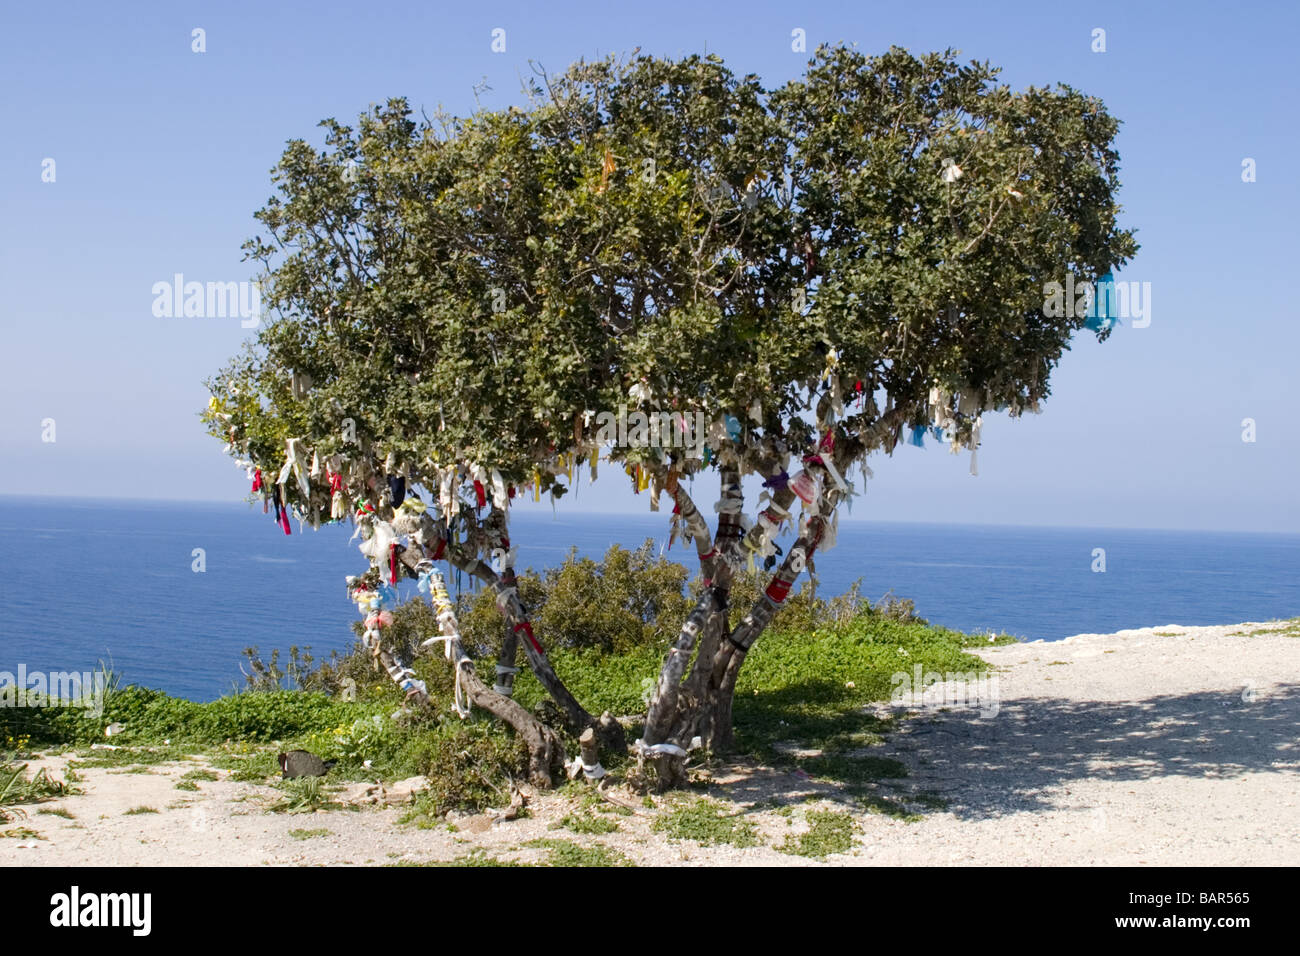 Rags tied to memory tree North Cyprus coast - Stock Image